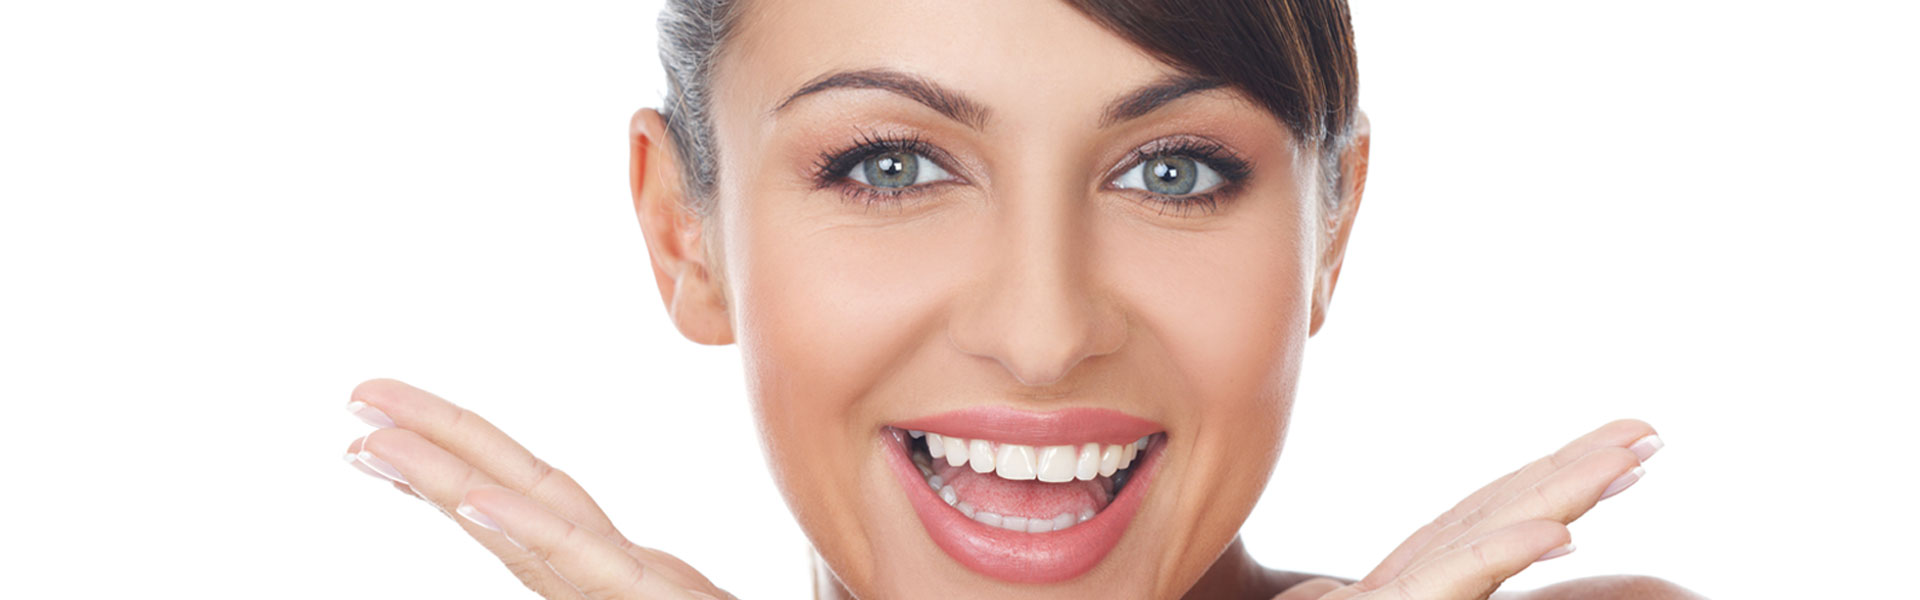 Dental Teeth Whitening as Part of Your Beauty Routine